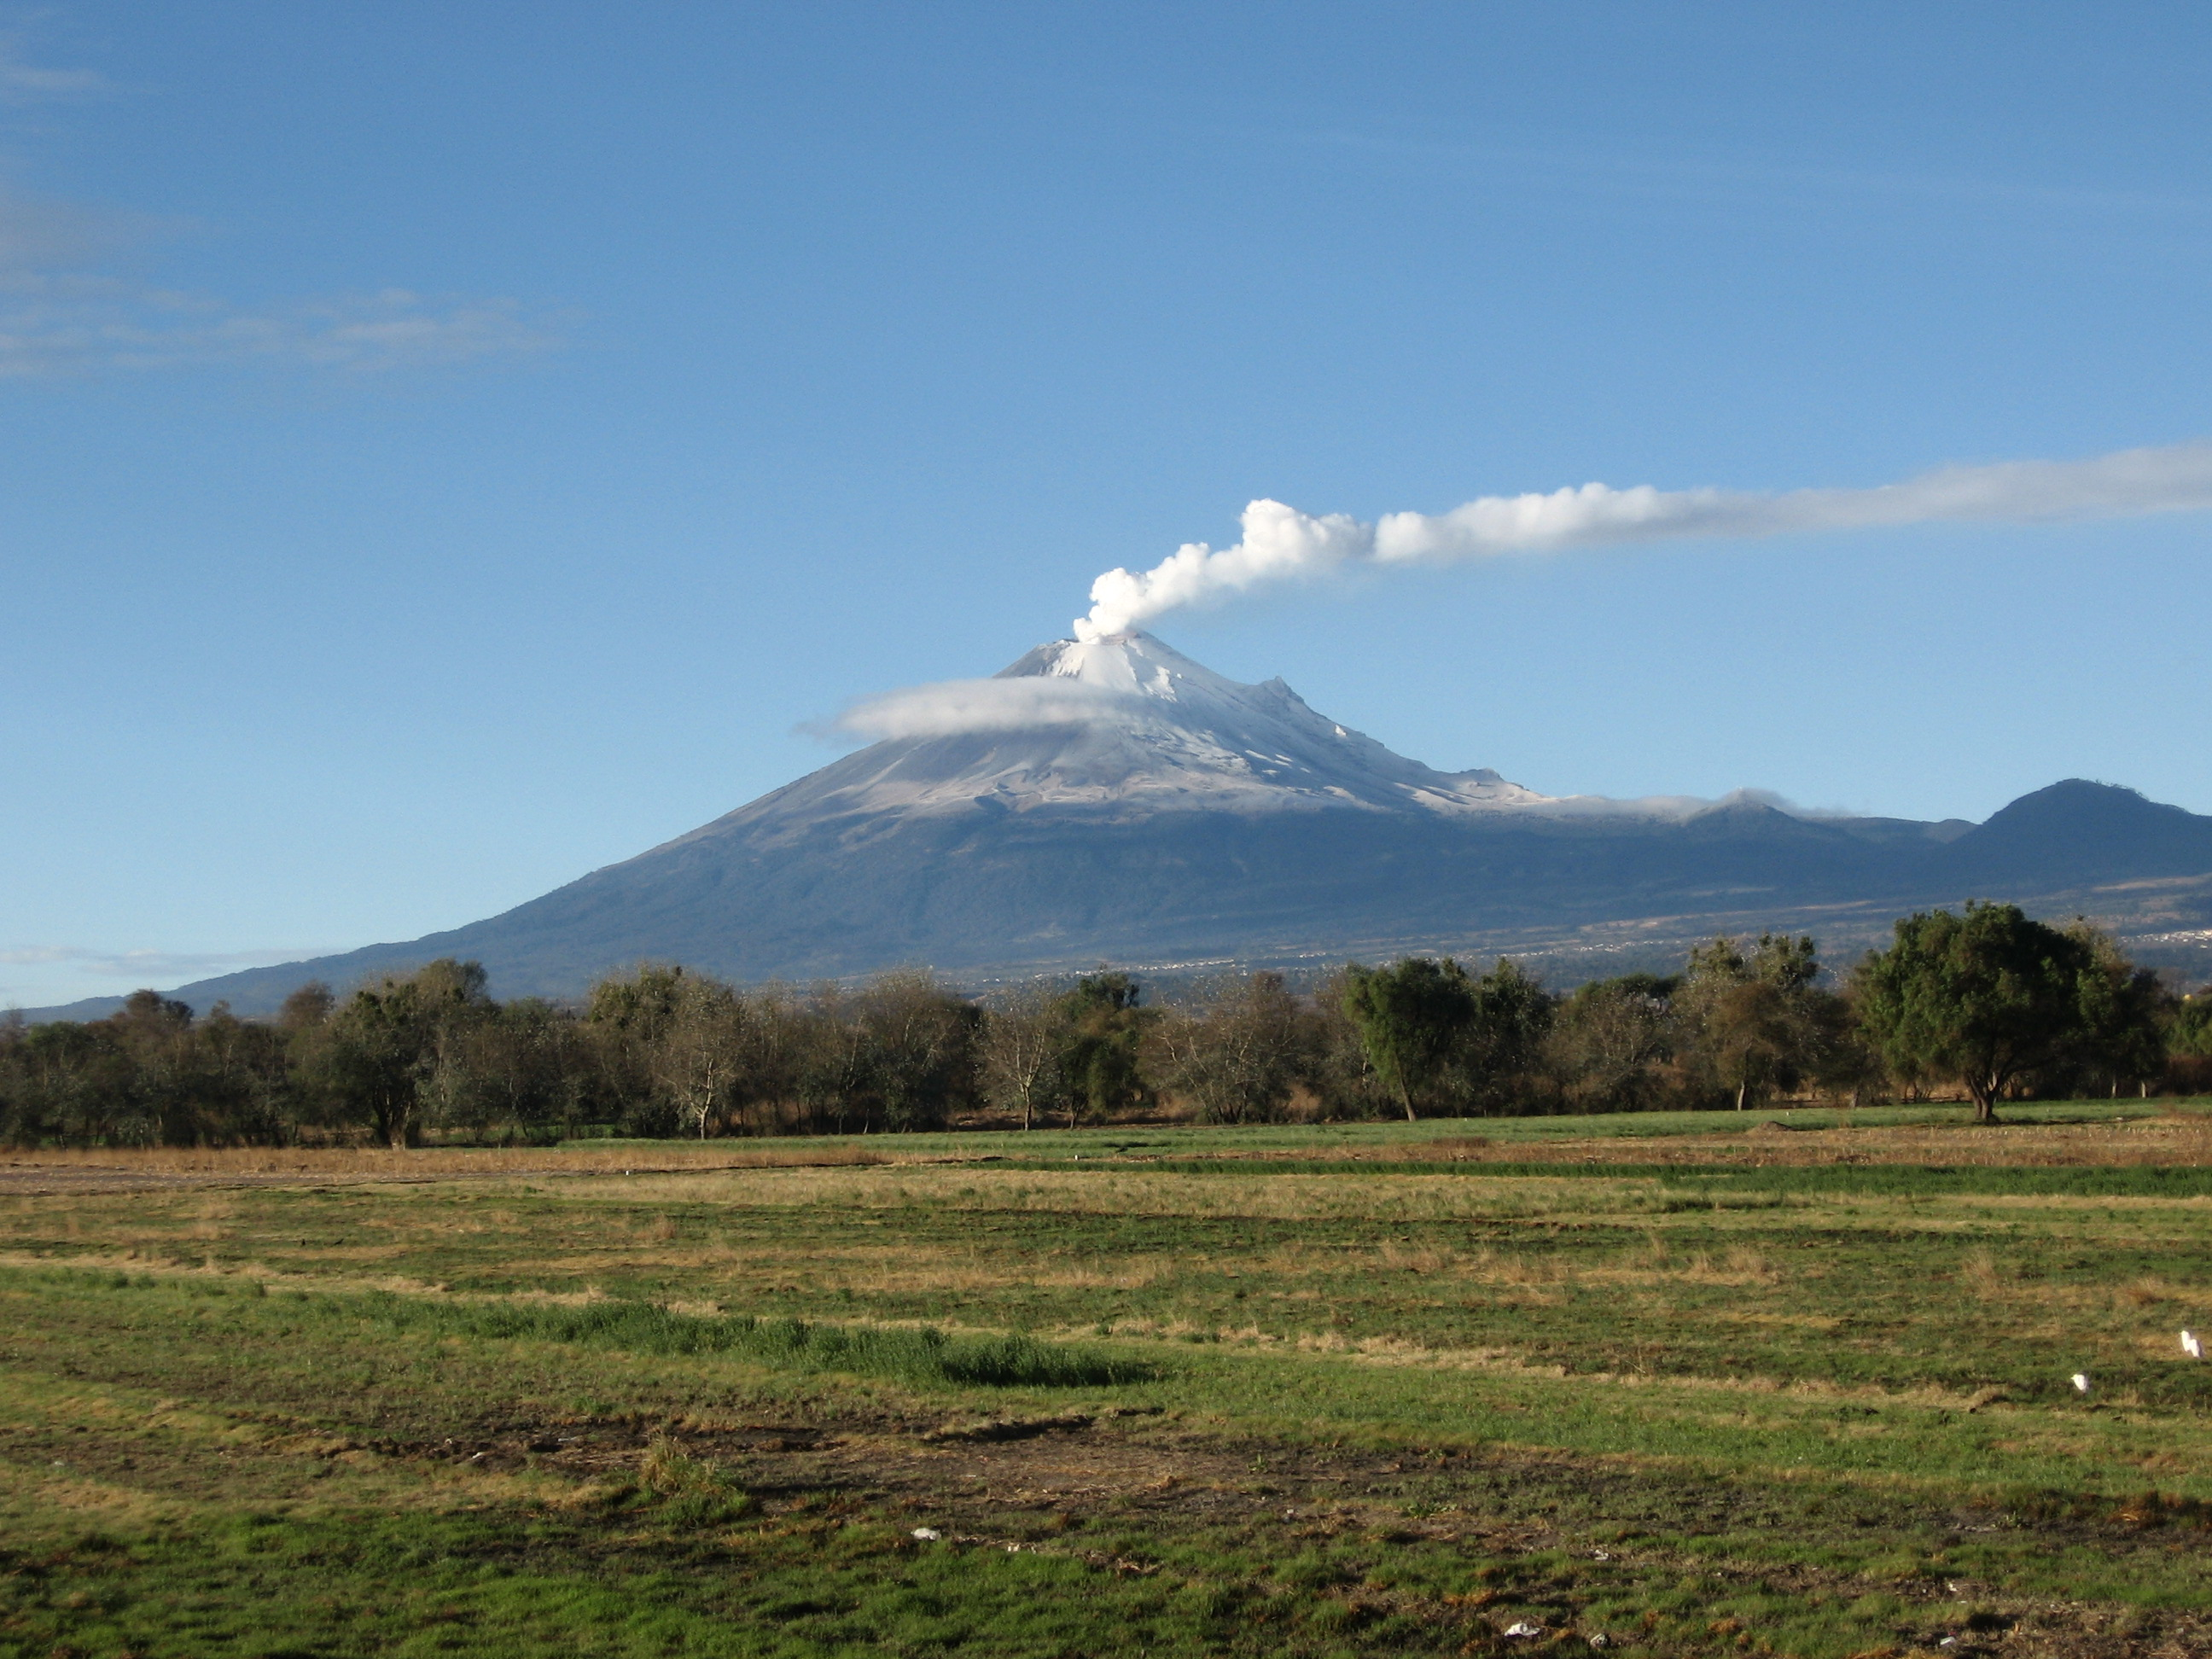 https://upload.wikimedia.org/wikipedia/commons/3/35/Popocat%C3%A9petl_fumarola.jpg